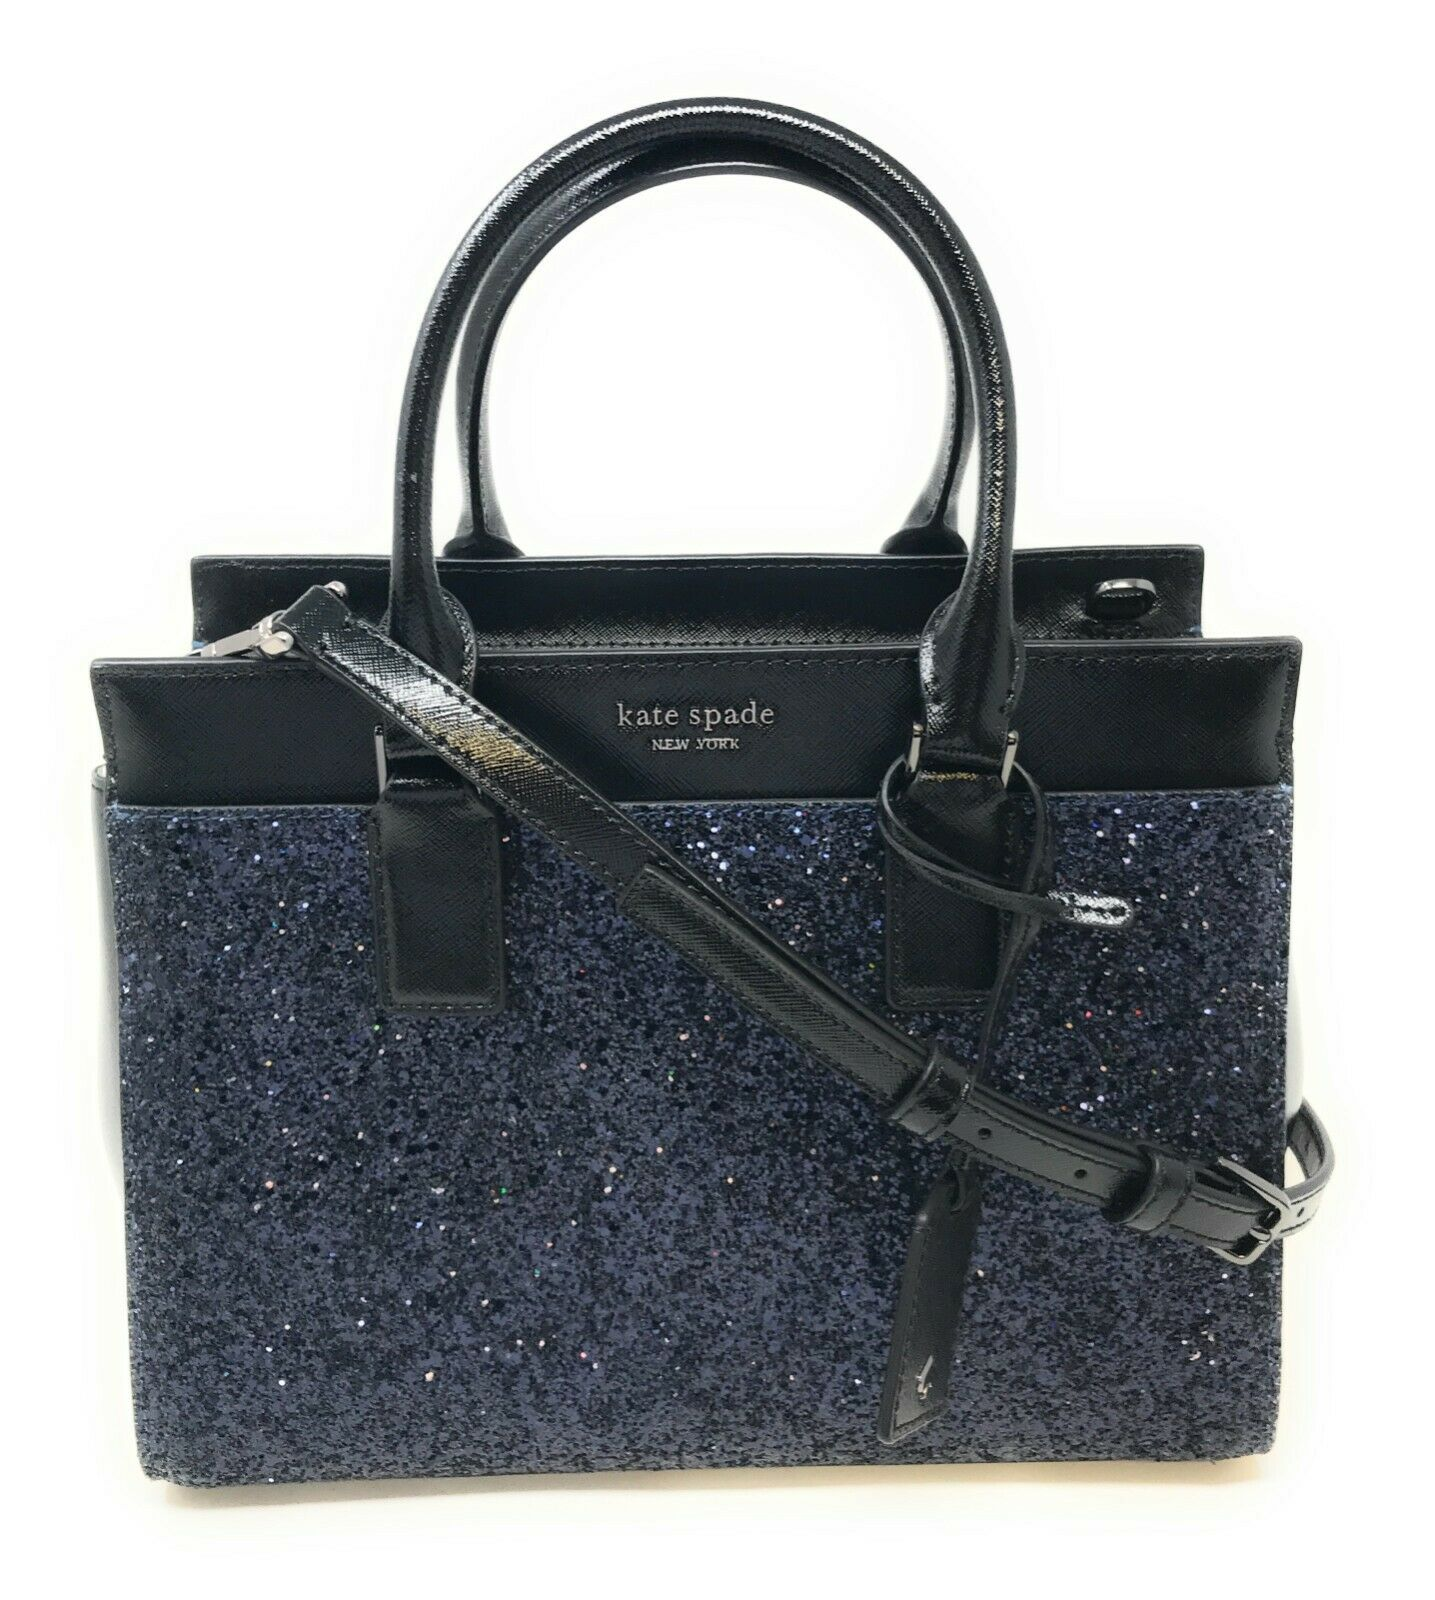 Kate Spade Cameron Medium Satchel Crossbody Bag Handbag WKRU5851 $369